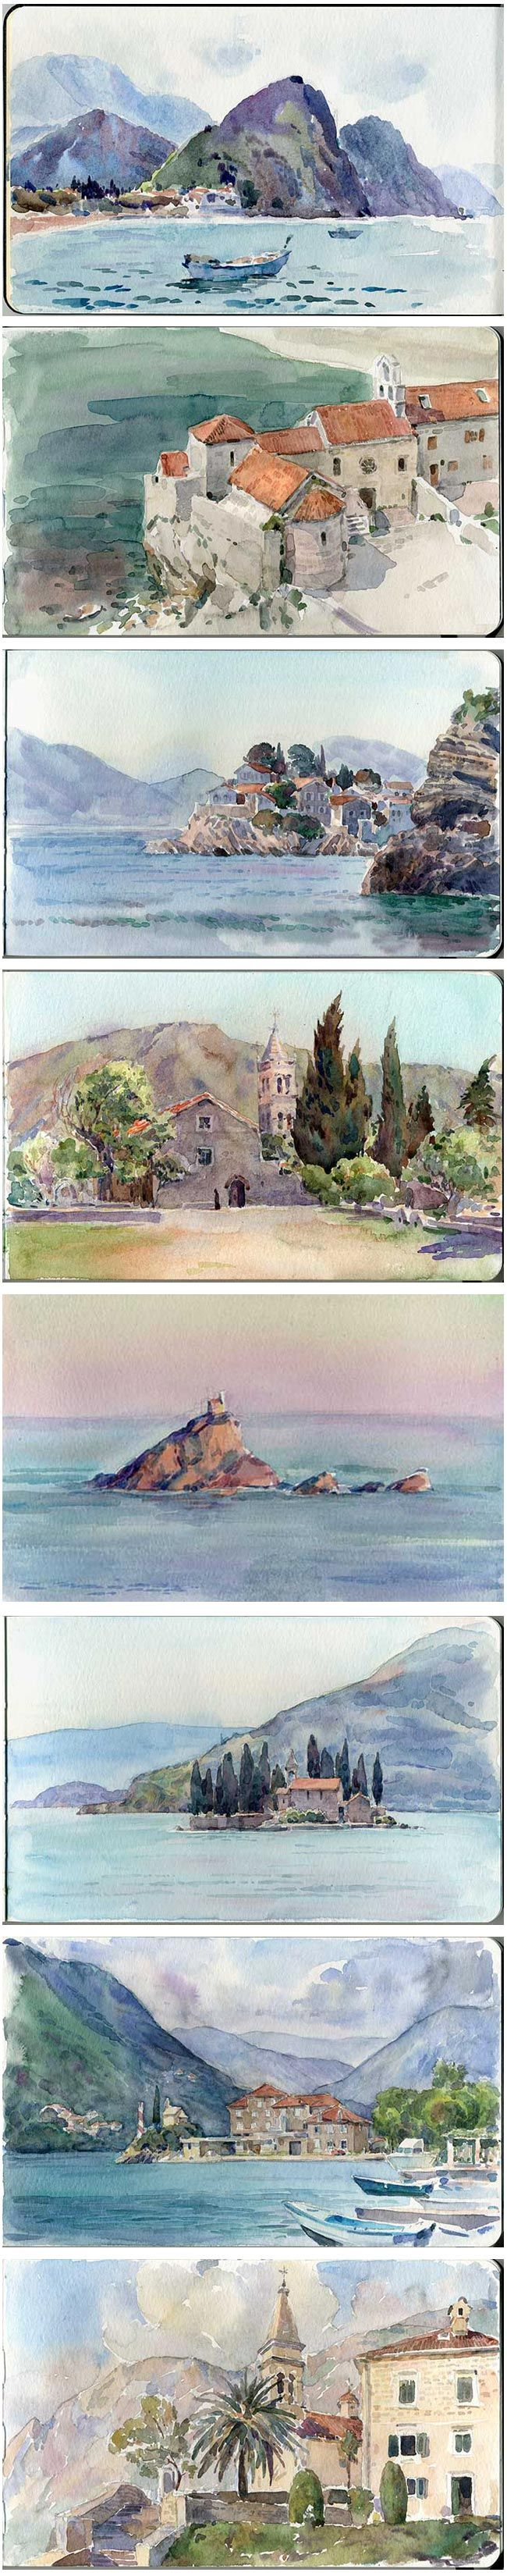 plein air watercolor sketches by ~art-bat on deviantART